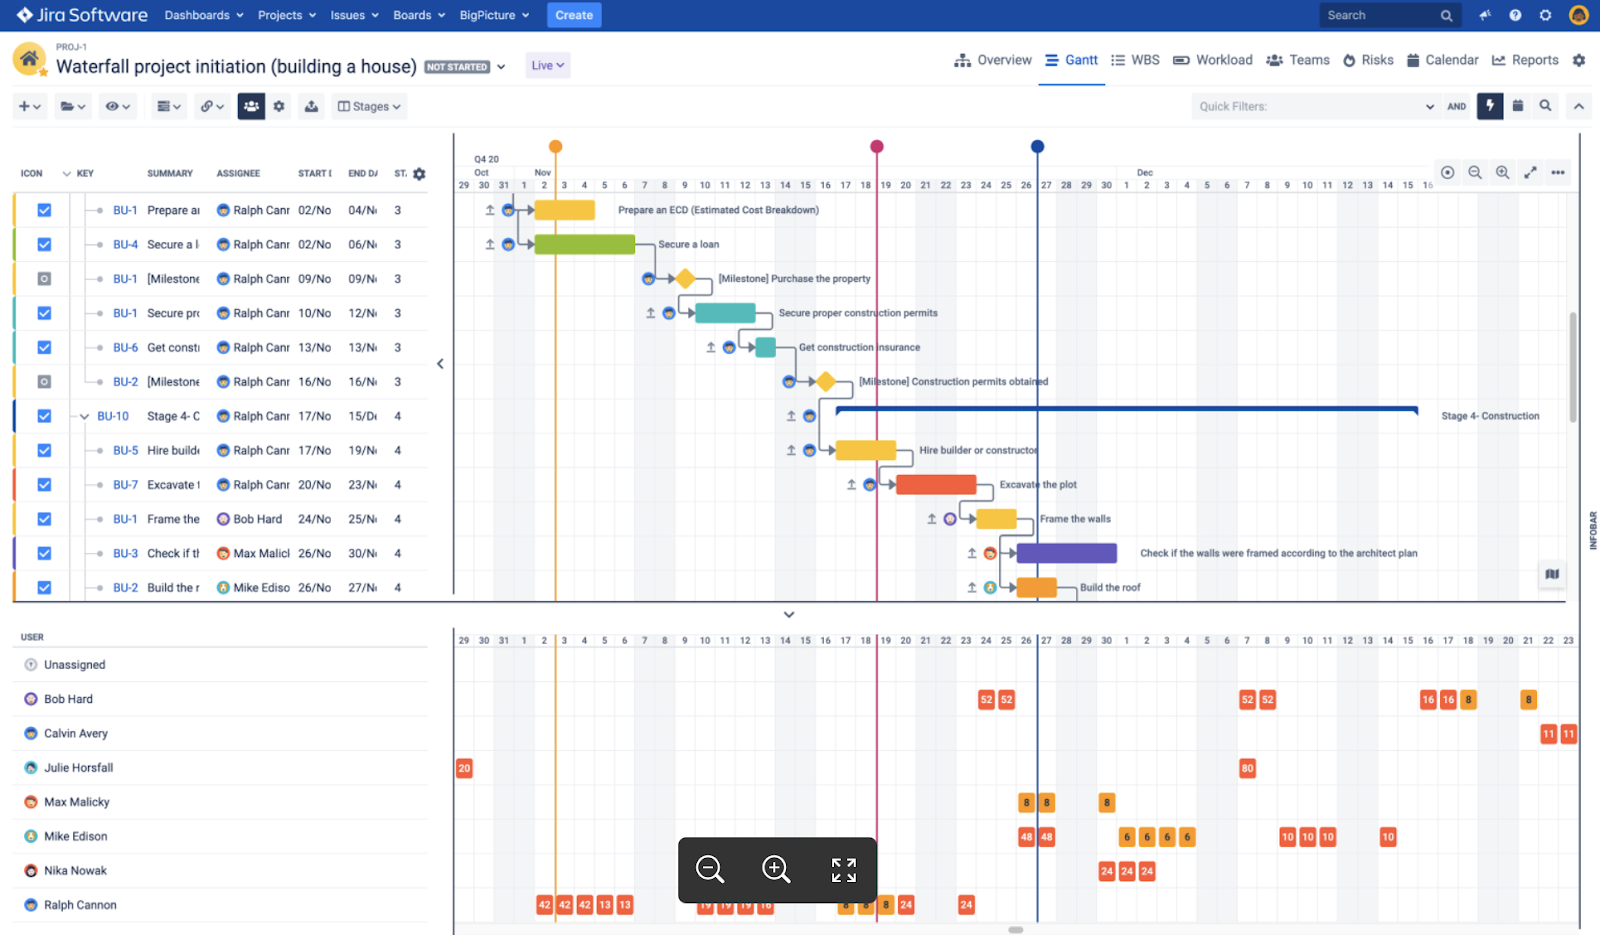 Overview of BigPicture app in Jira